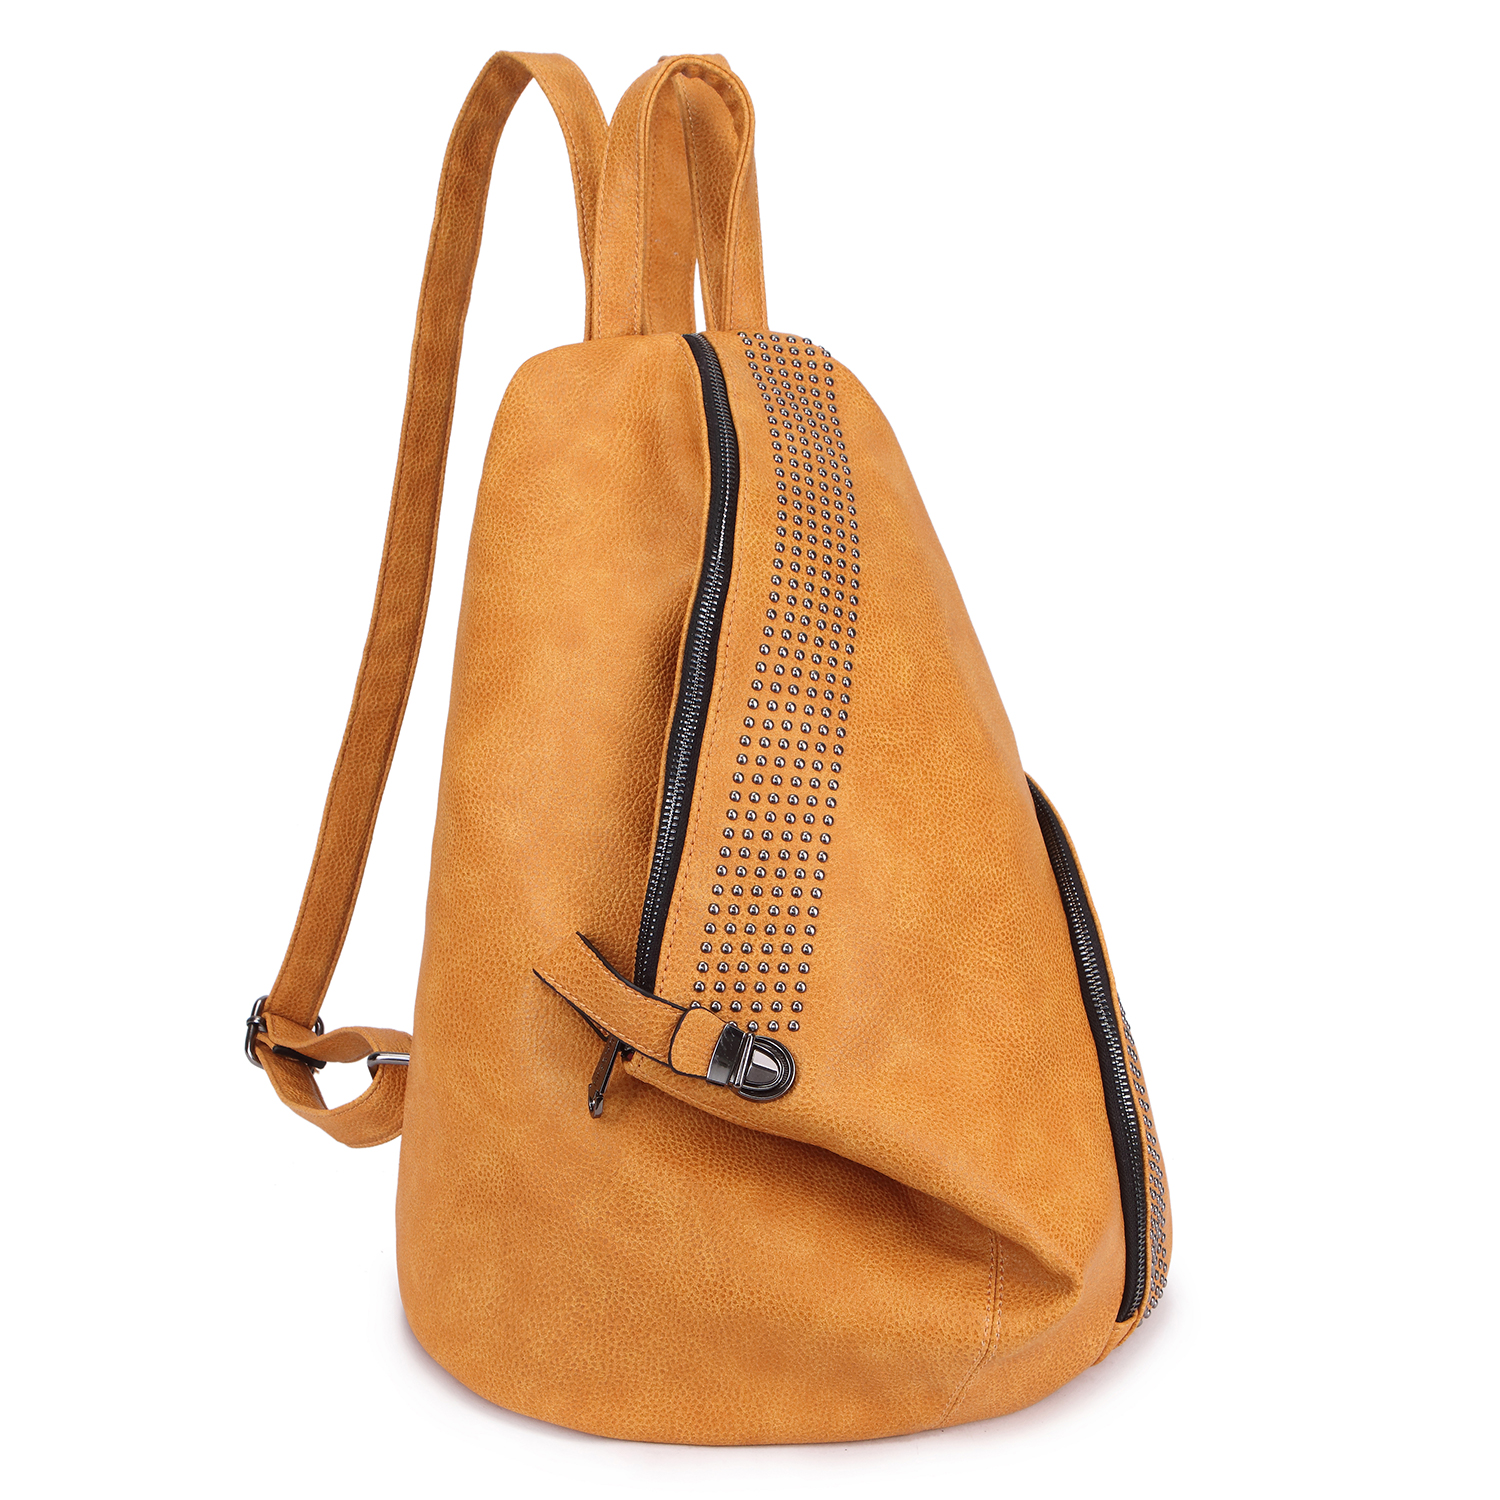 Fashionable Sling Style Backpack with Studs